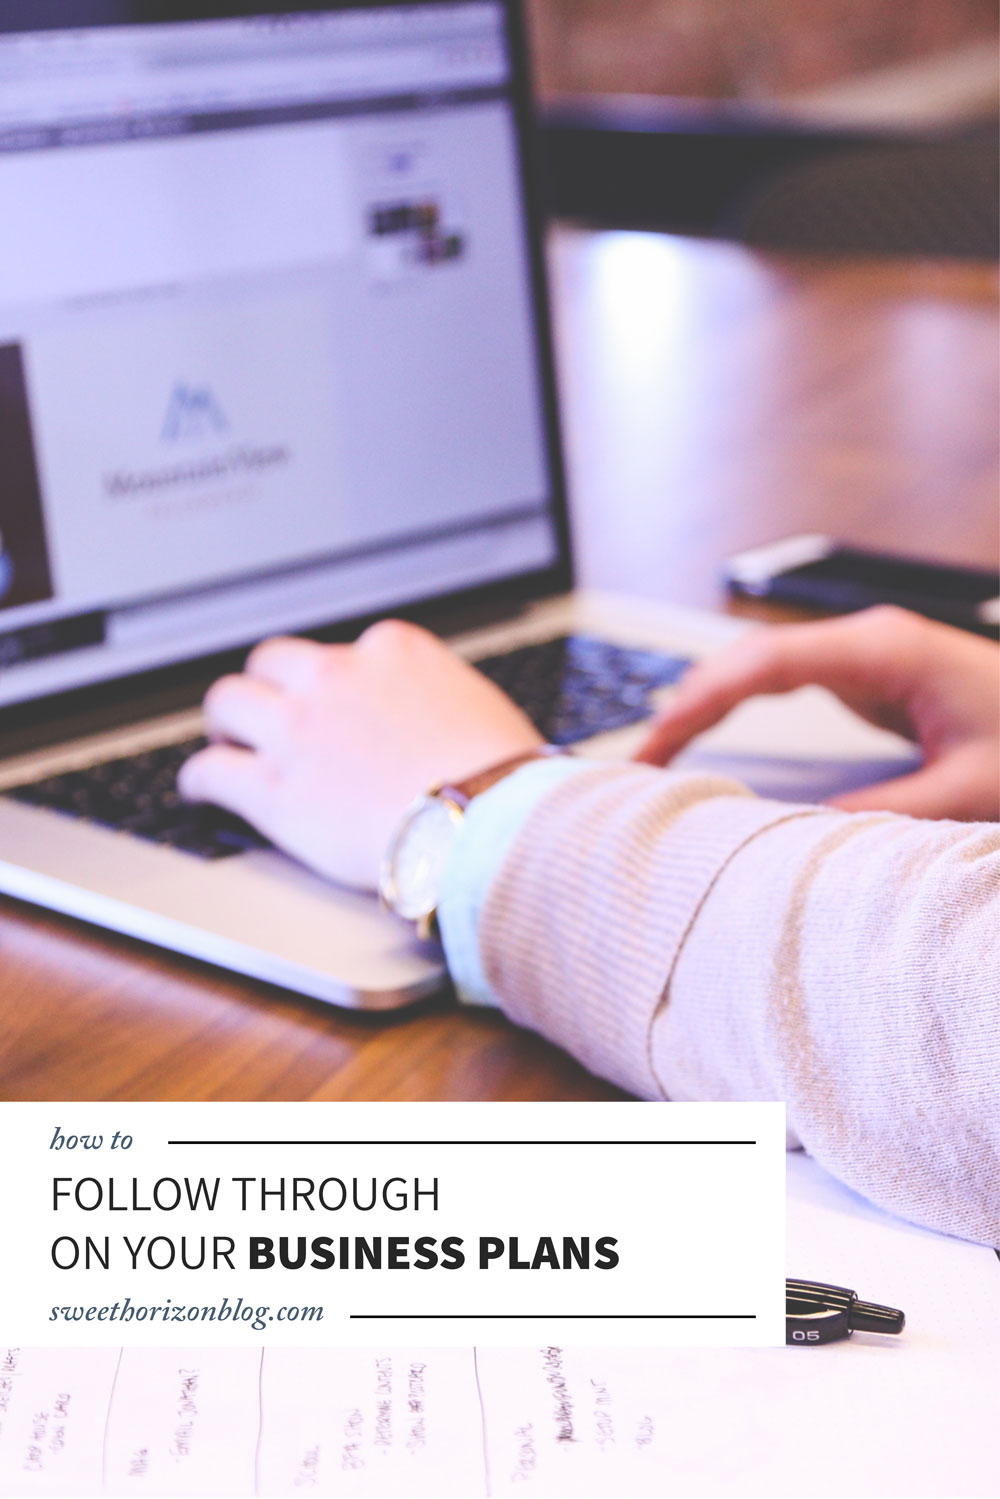 Connecting Ideas to Concept - How to Follow Through on Your Business Plans from www.sweethorizonblog.com